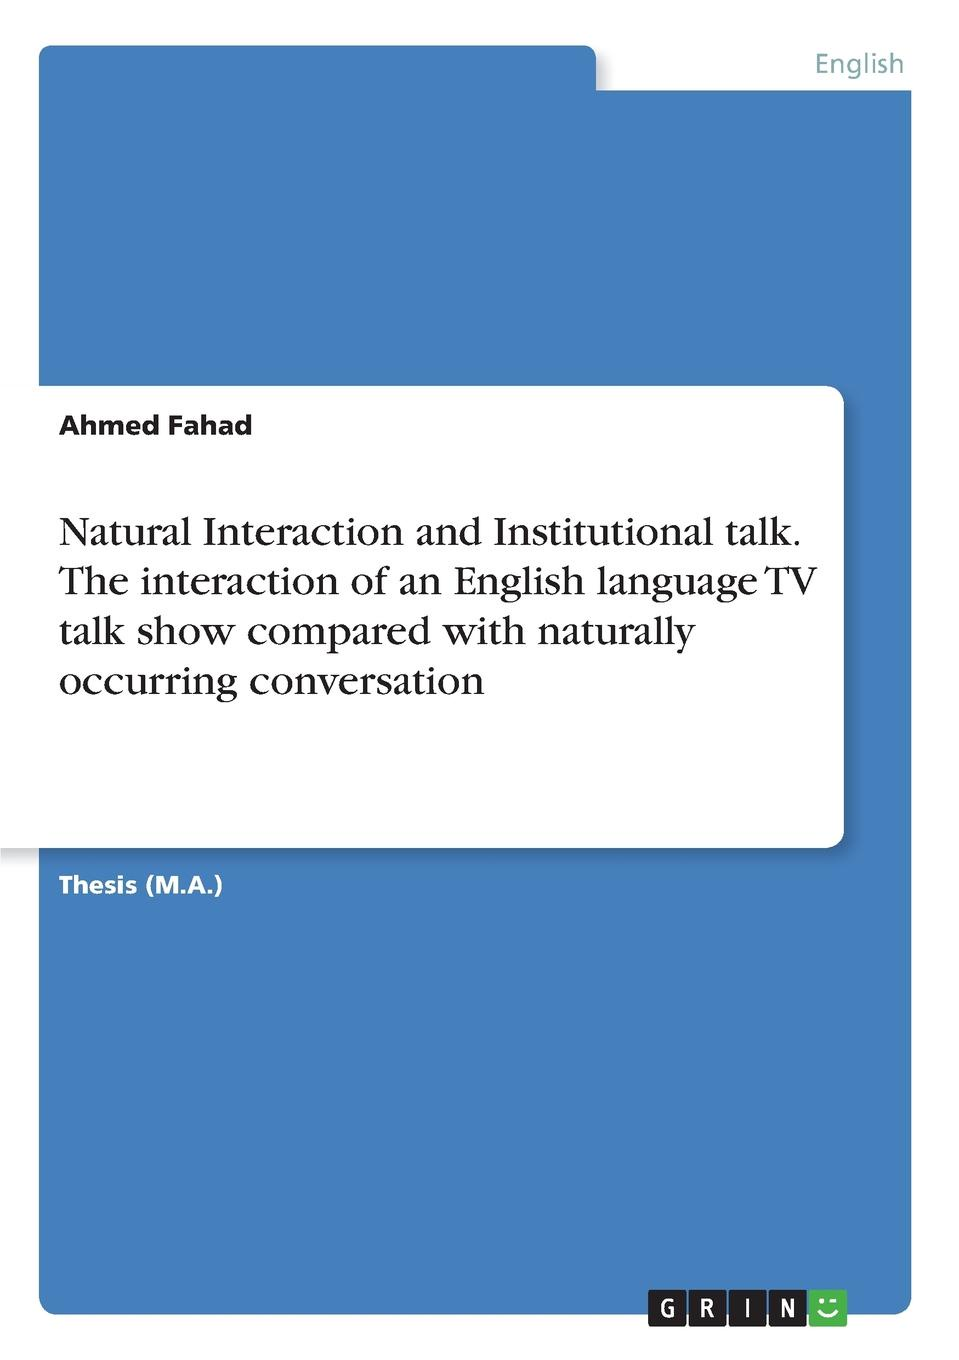 купить Ahmed Fahad Natural Interaction and Institutional talk. The interaction of an English language TV talk show compared with naturally occurring conversation по цене 5427 рублей